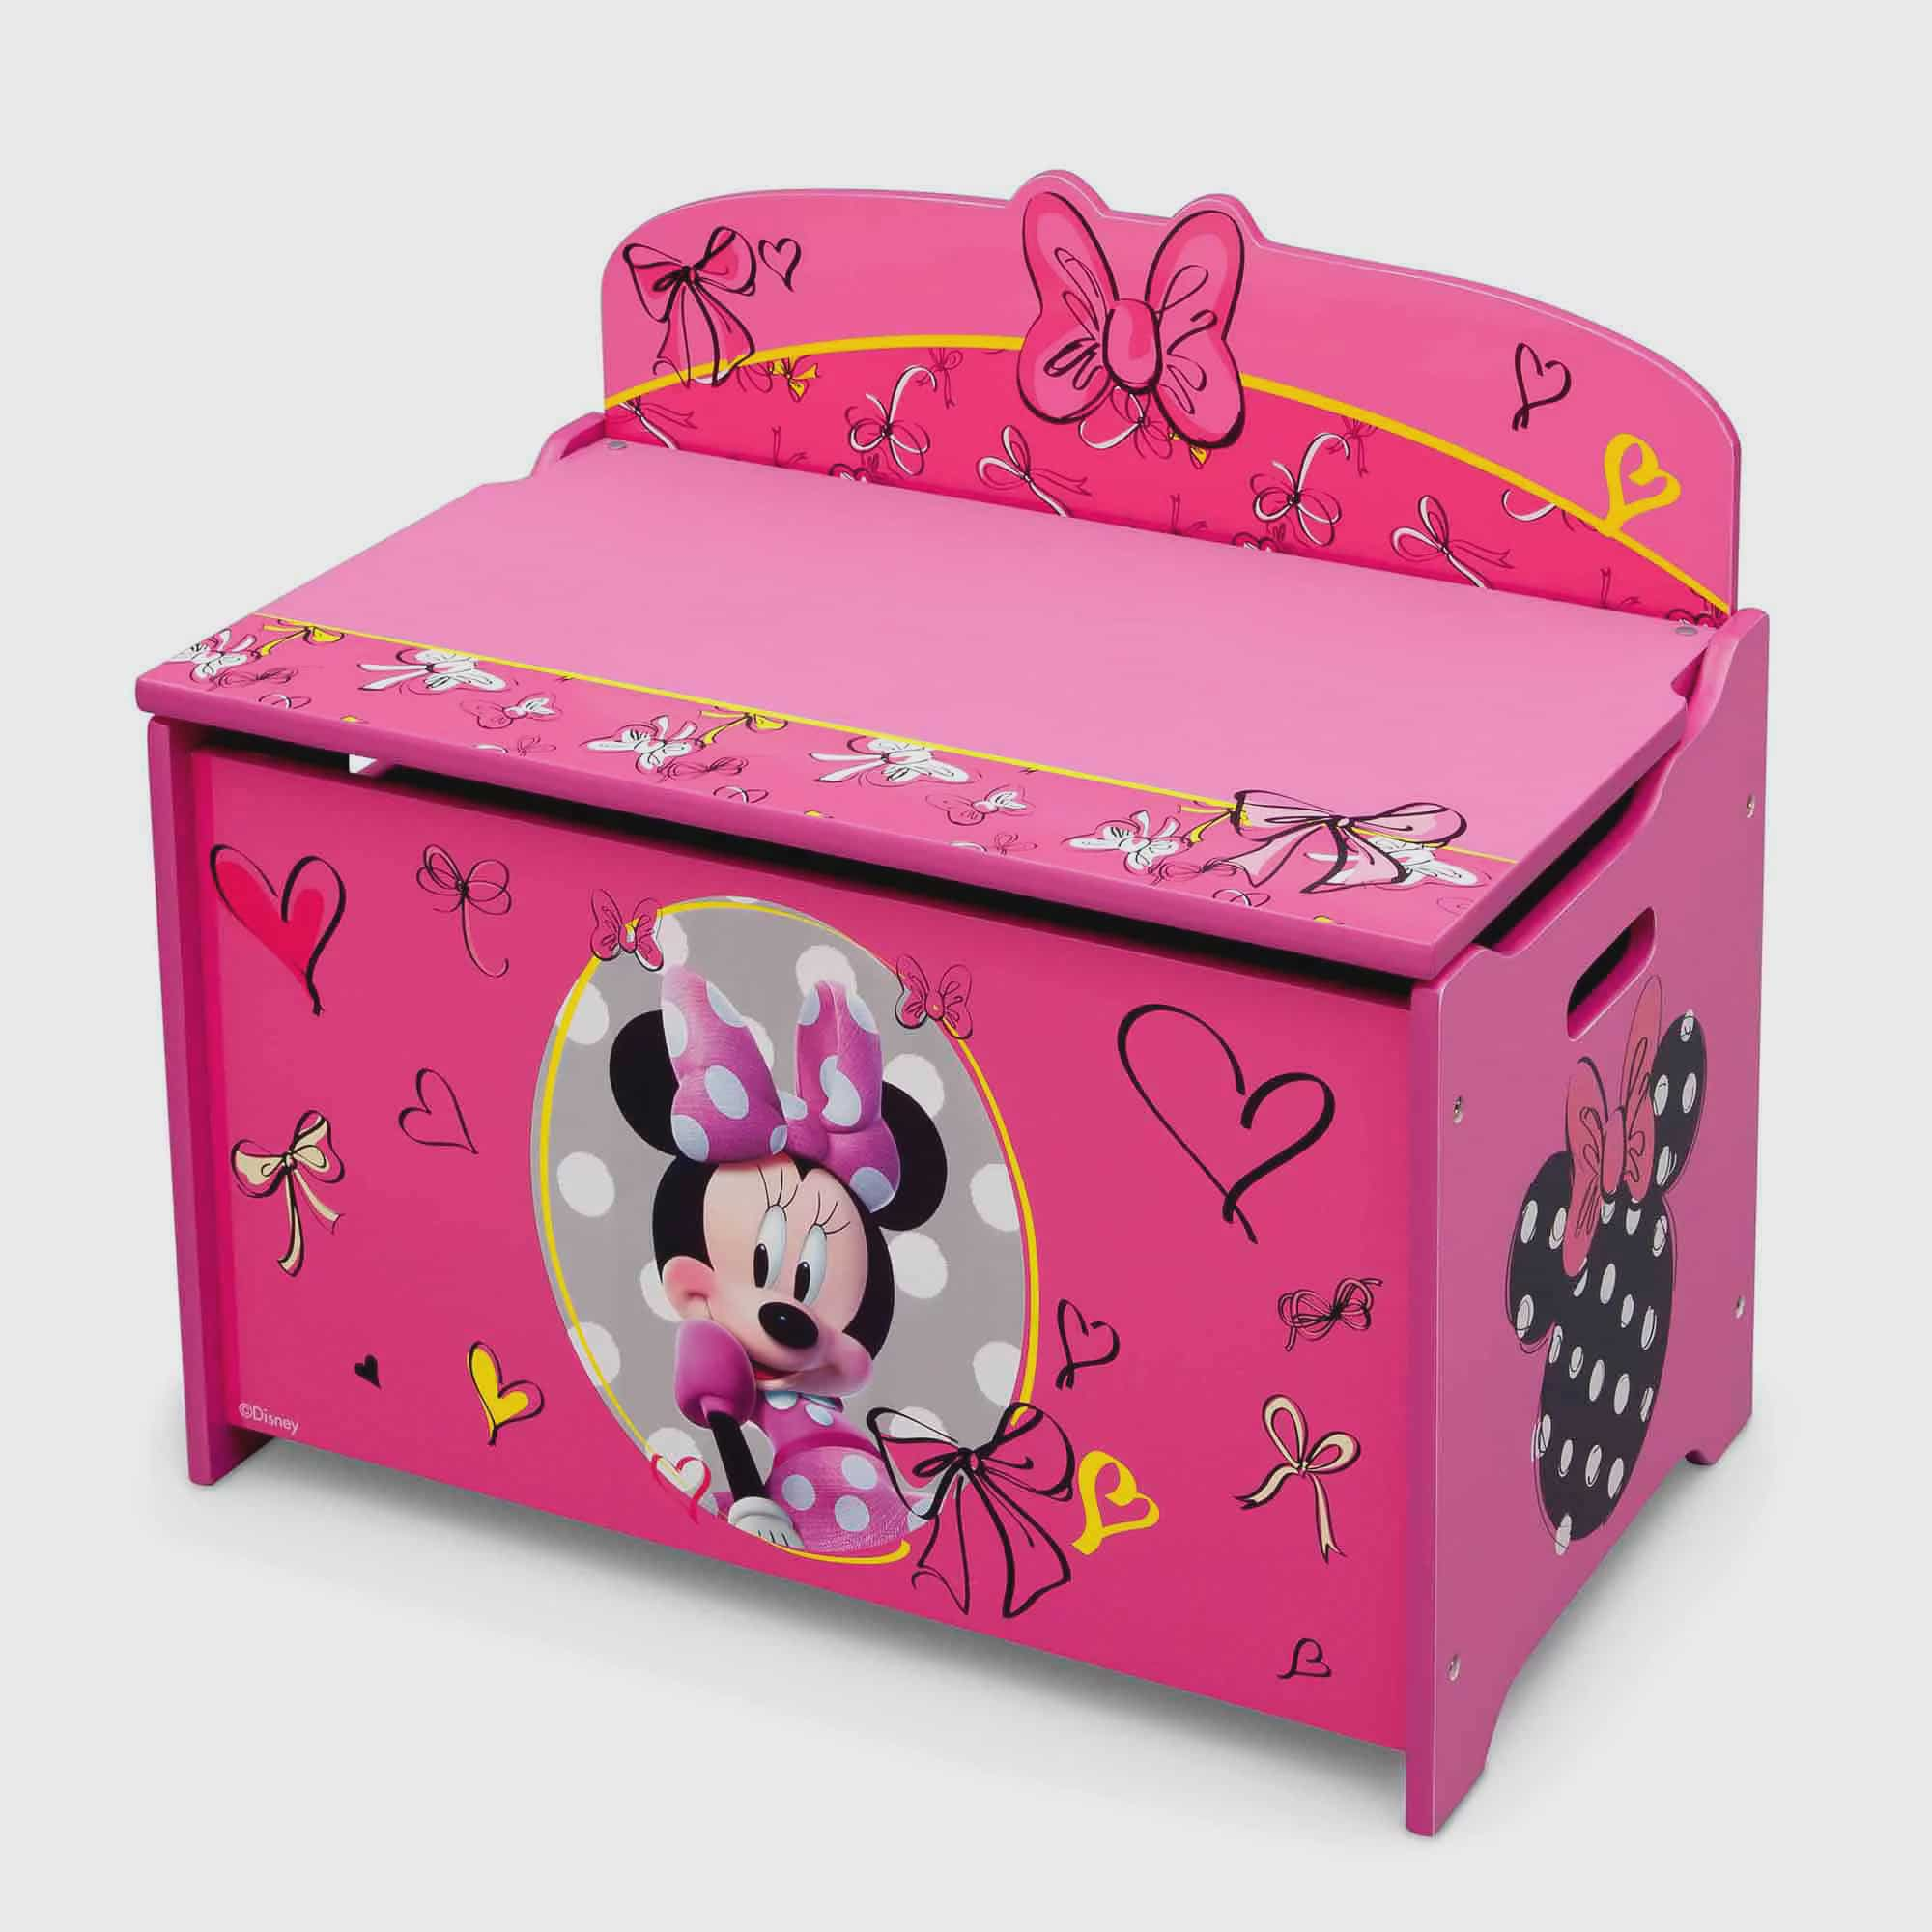 Disney Minnie Mouse Deluxe Toy Box by Delta Children's Products